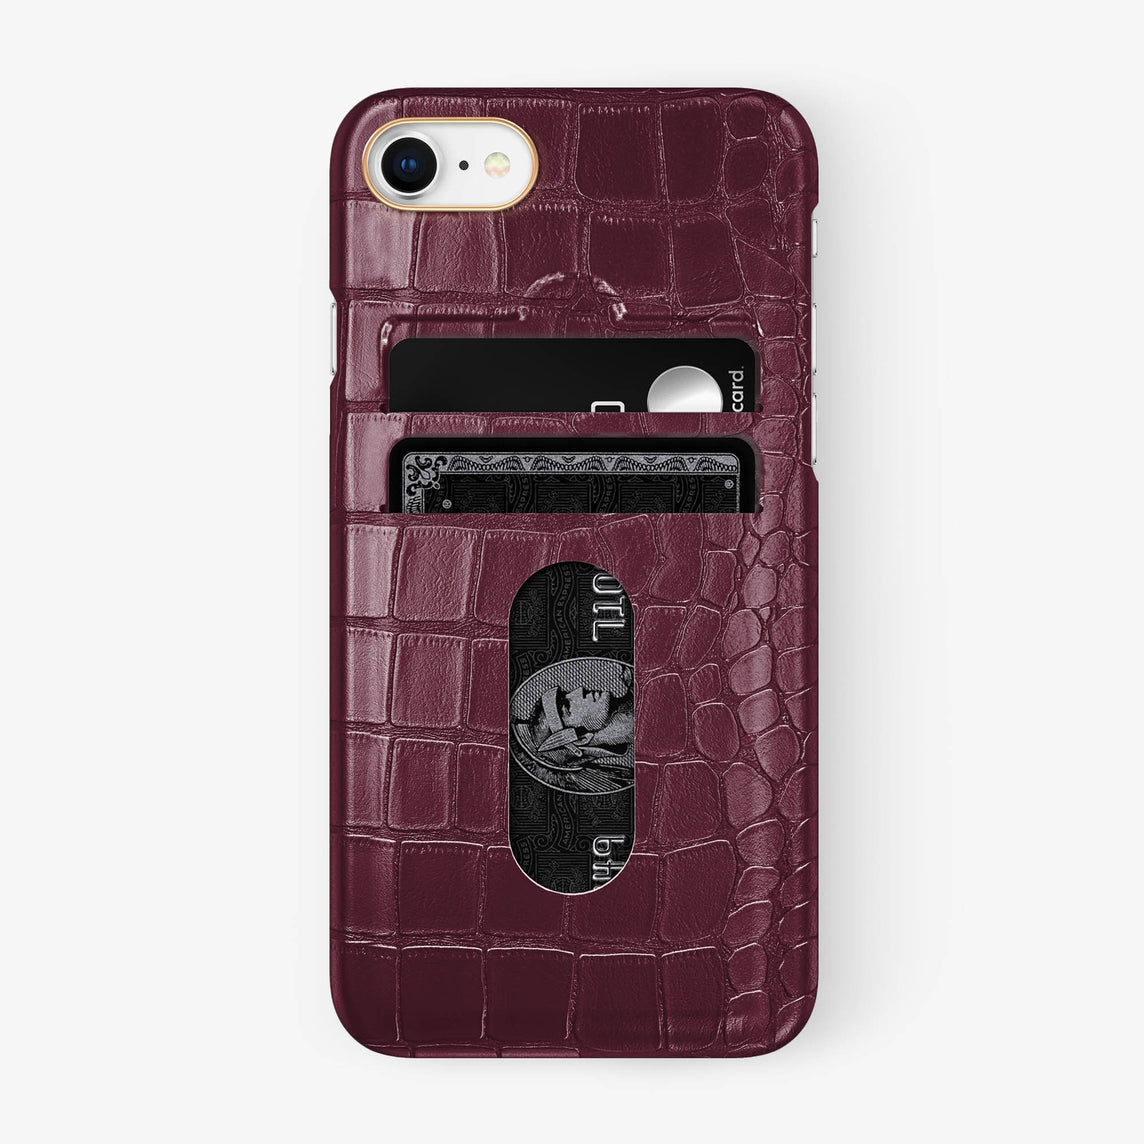 Alligator Card Holder Case iPhone 7/8 | Burgundy - Rose Gold - Hadoro